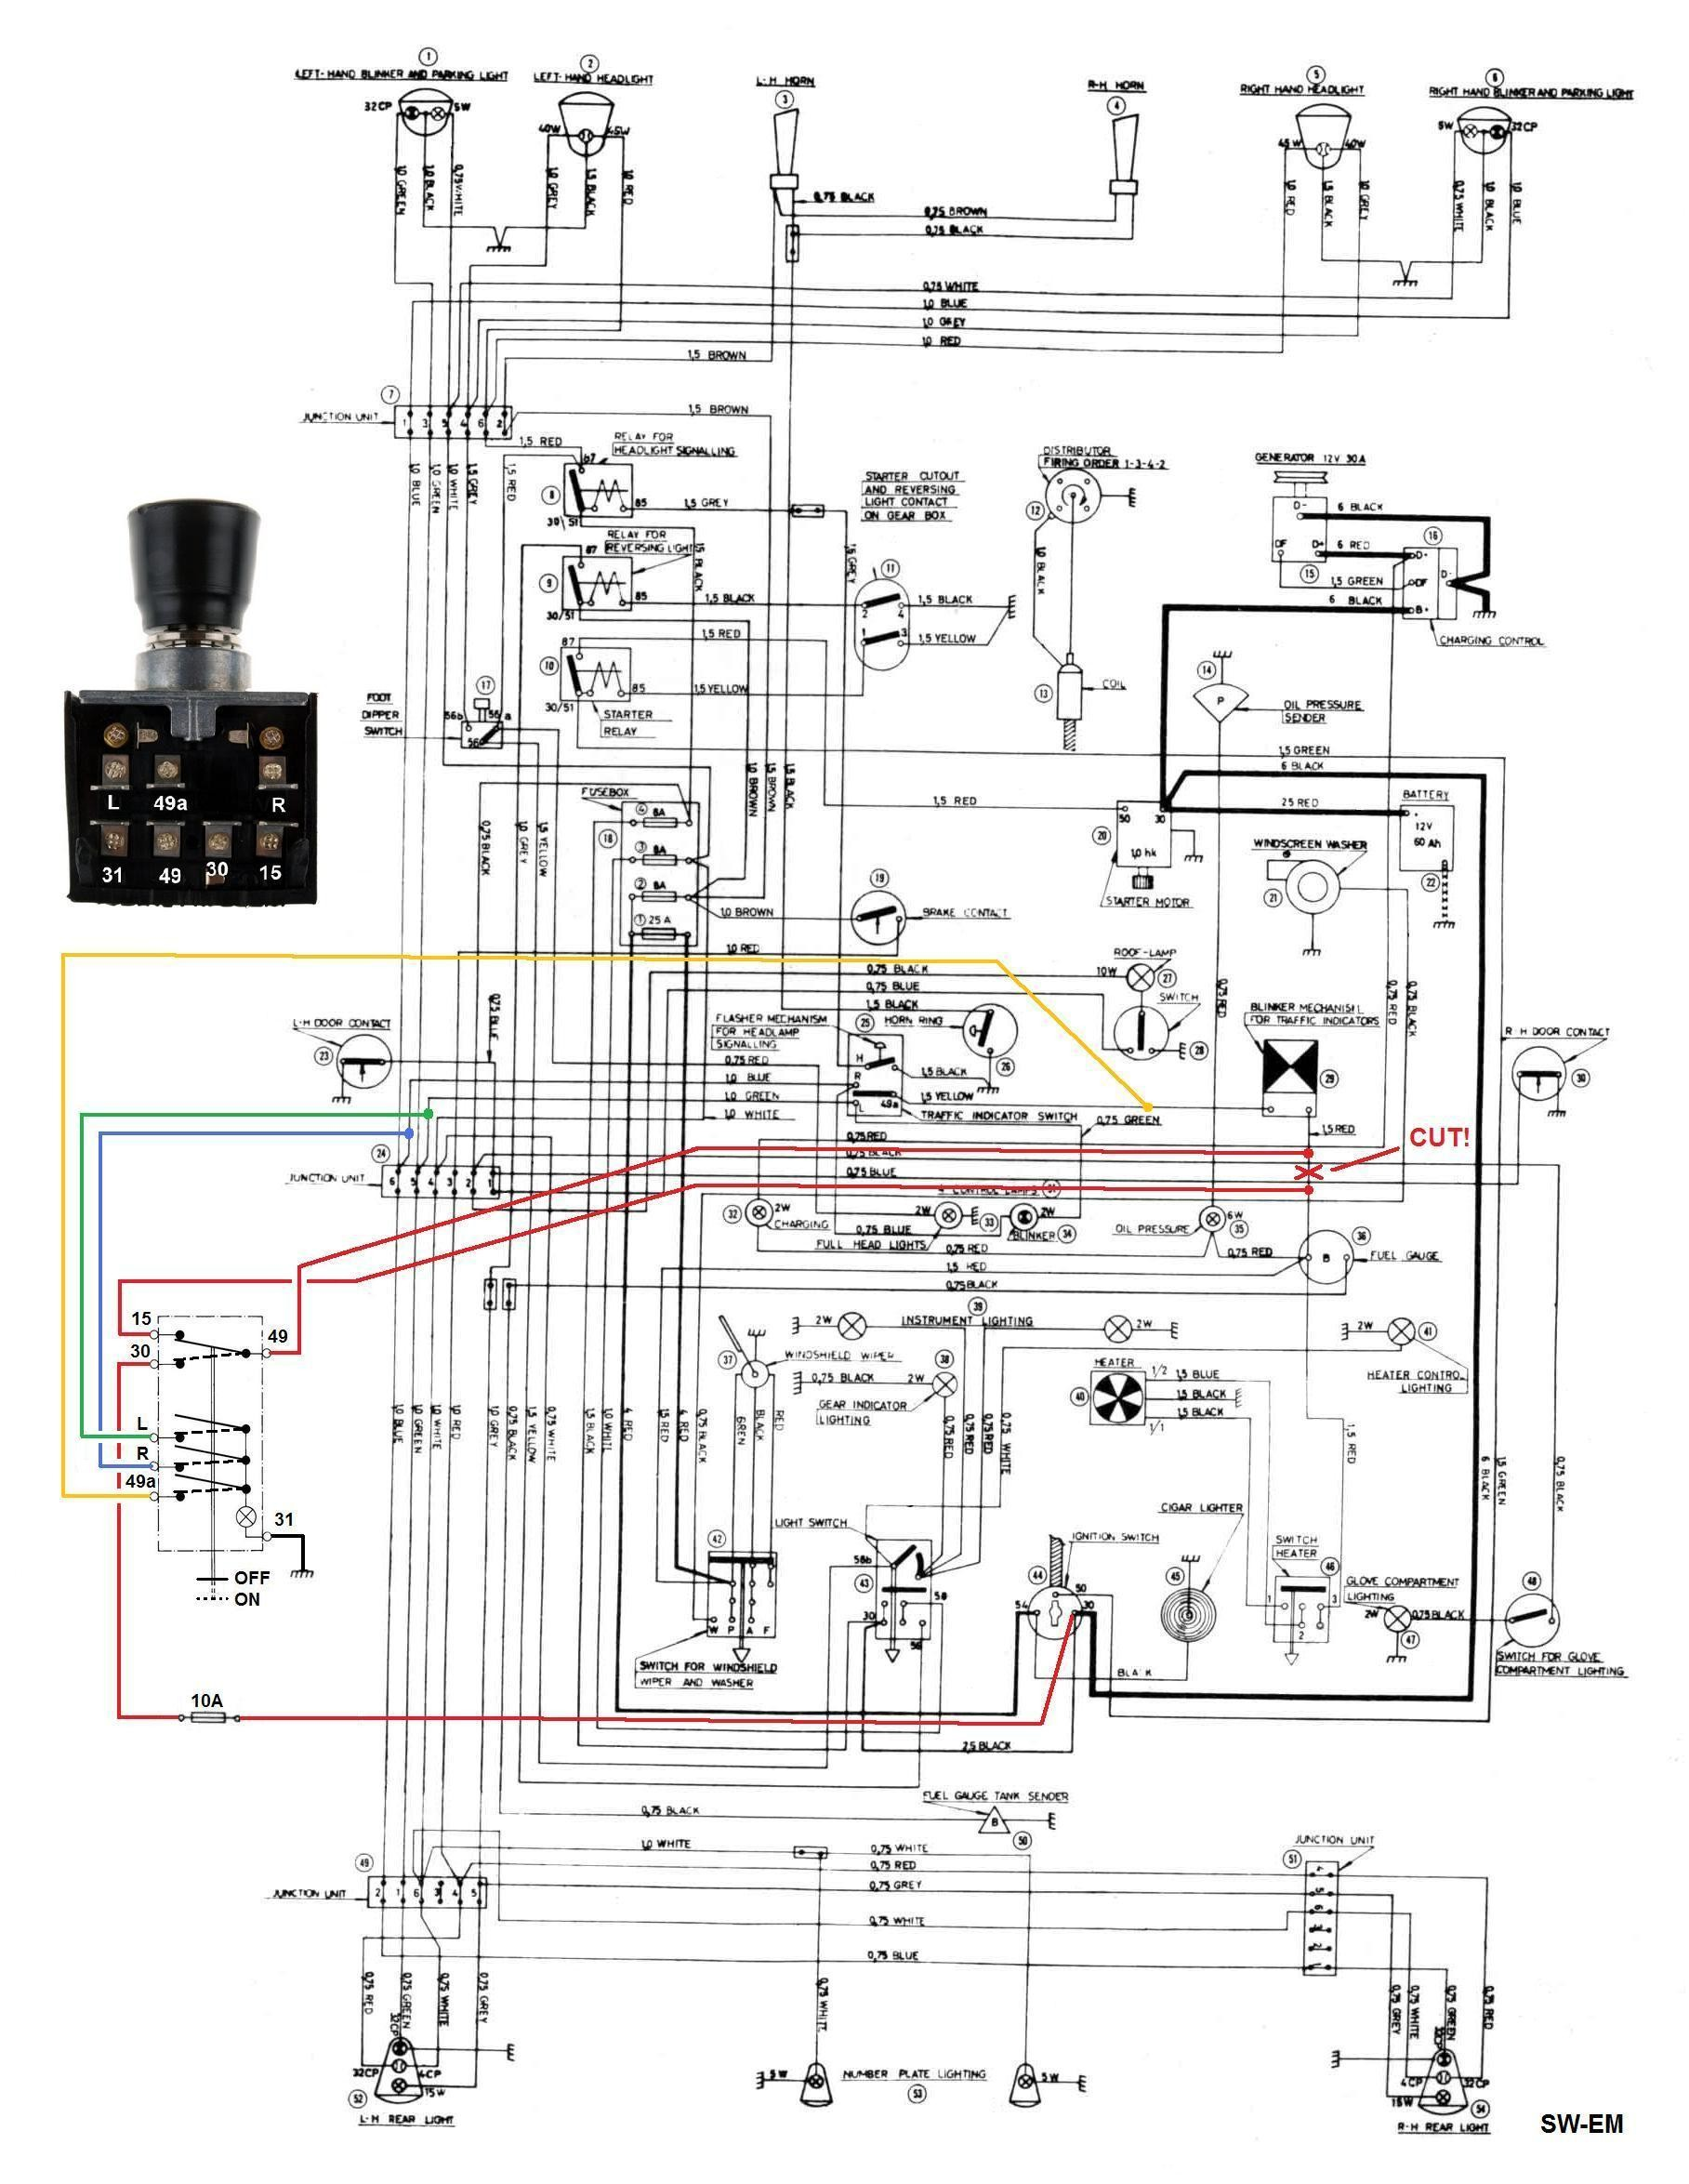 Signal Light Flasher Wiring Diagram Sw Em Emergency Flasher Of Signal Light Flasher Wiring Diagram